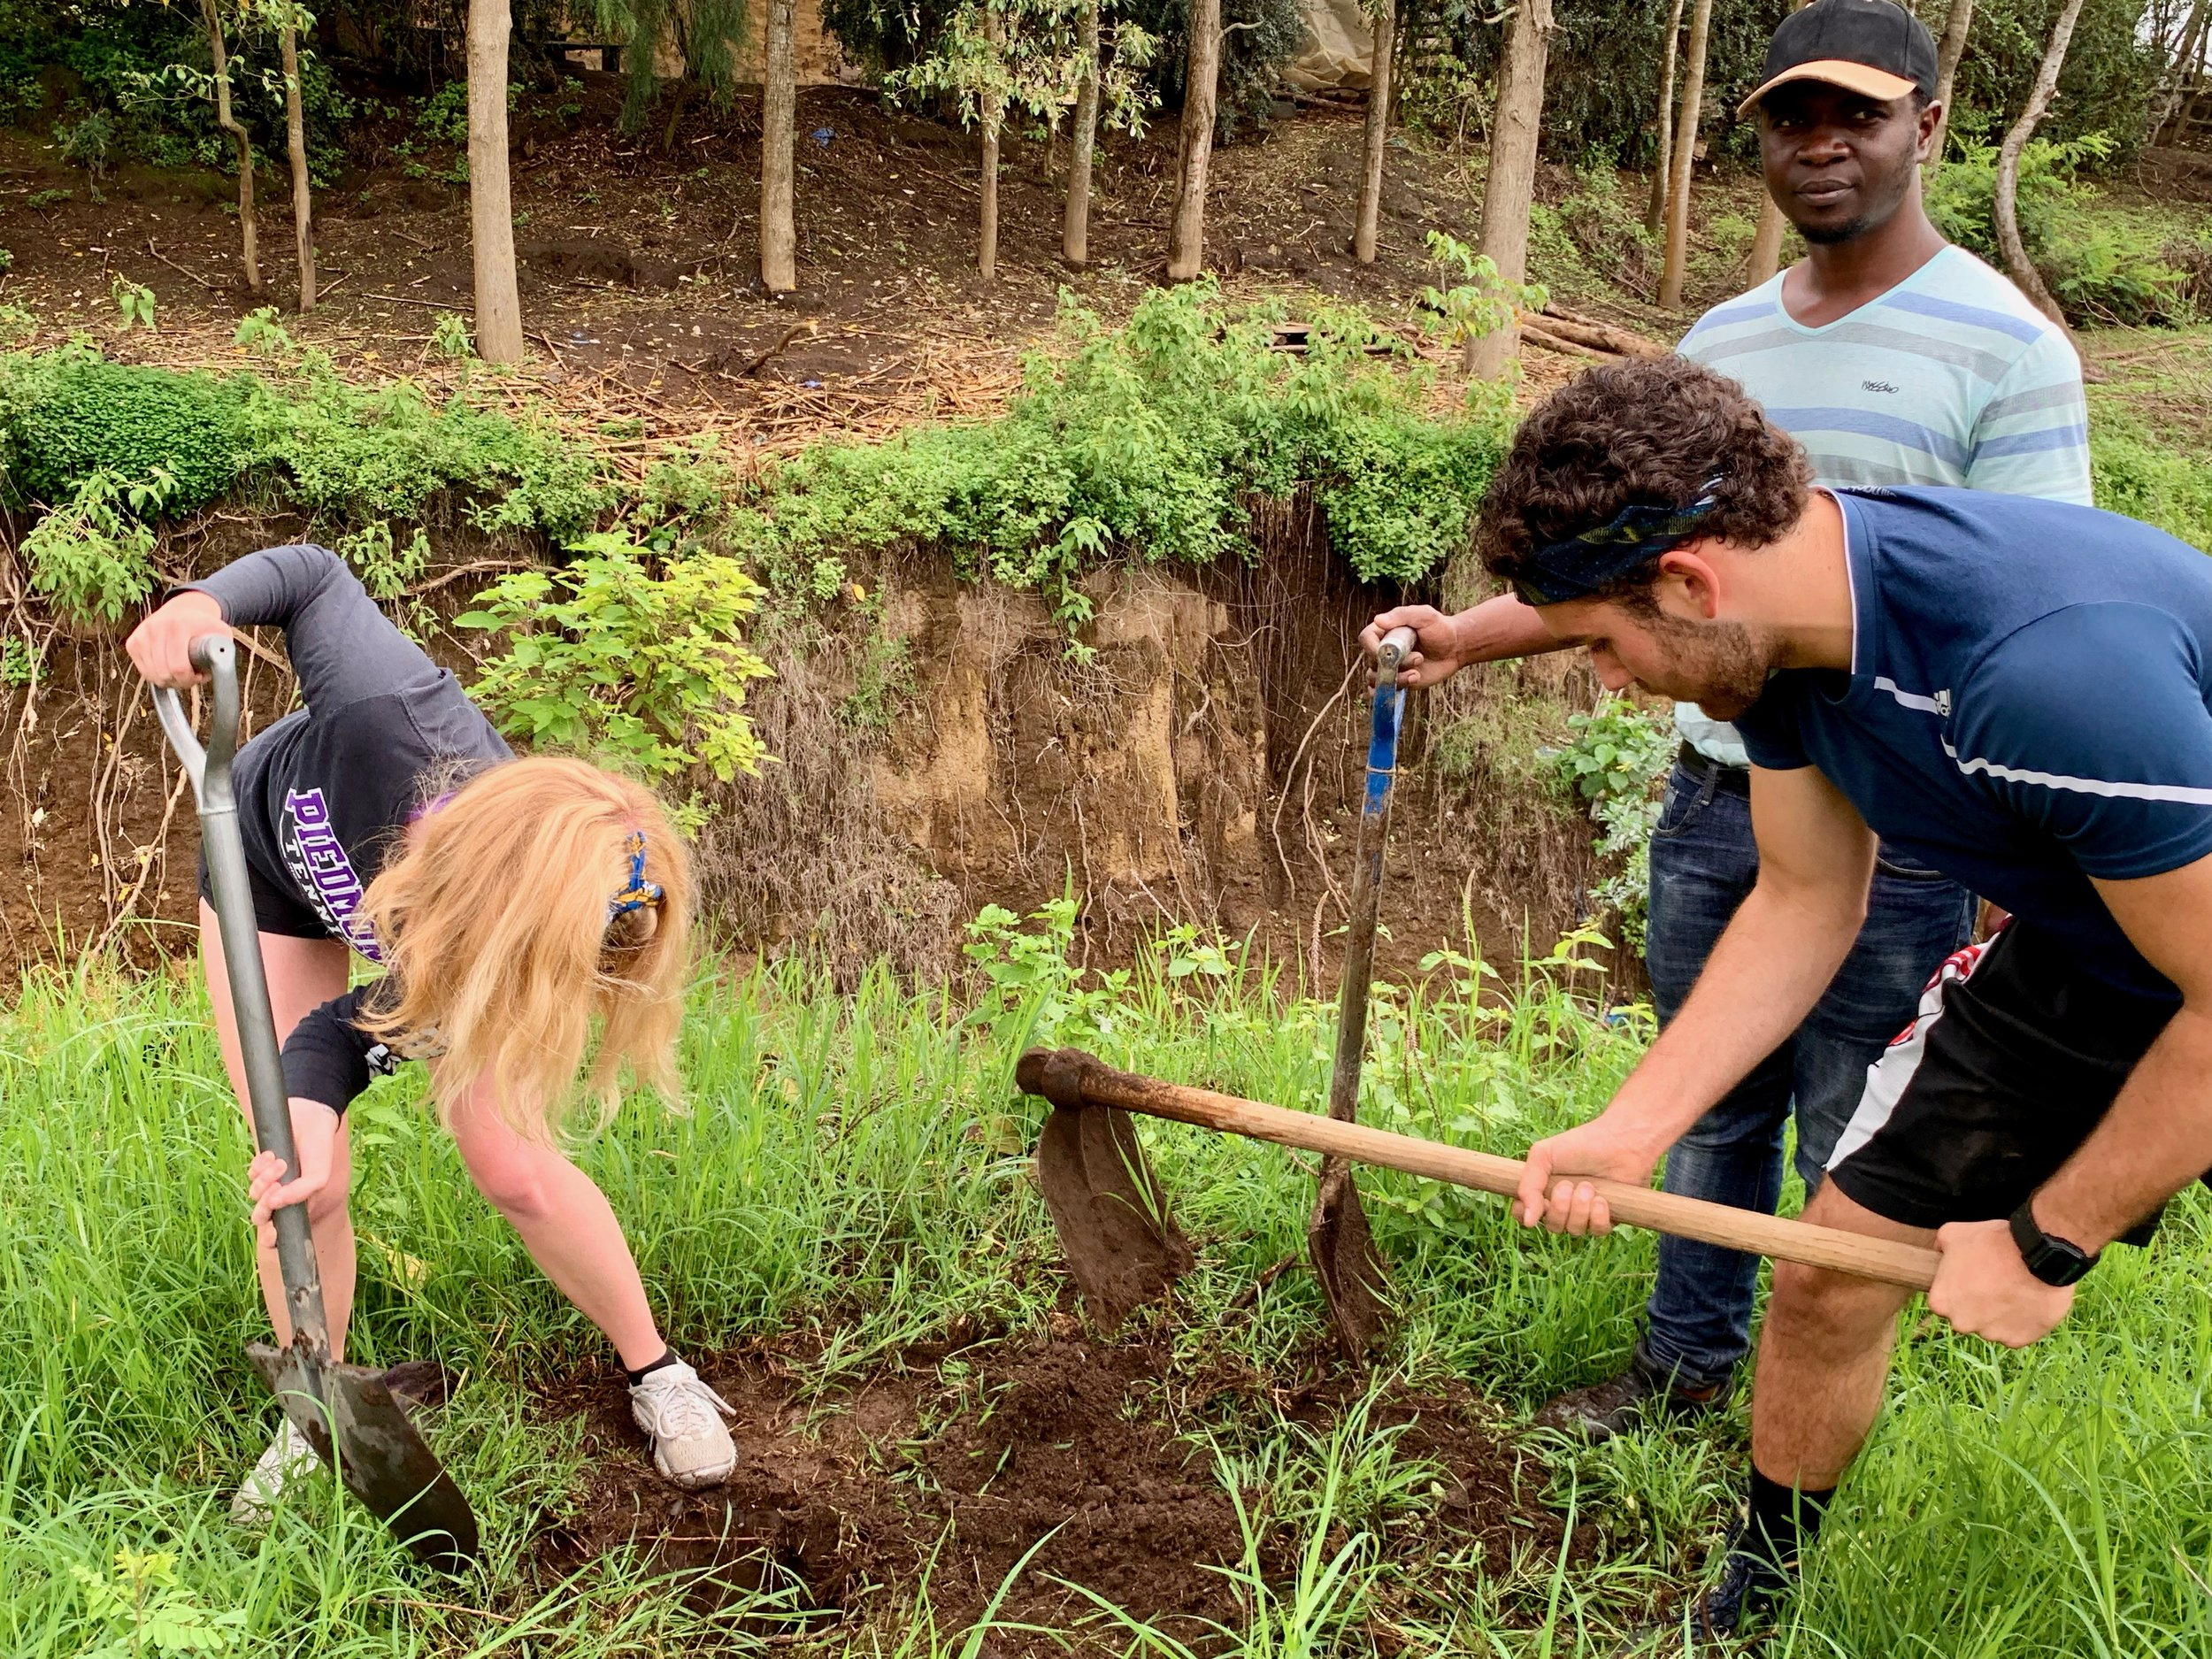 The students planting in front of the ravine, which you can see behind them.